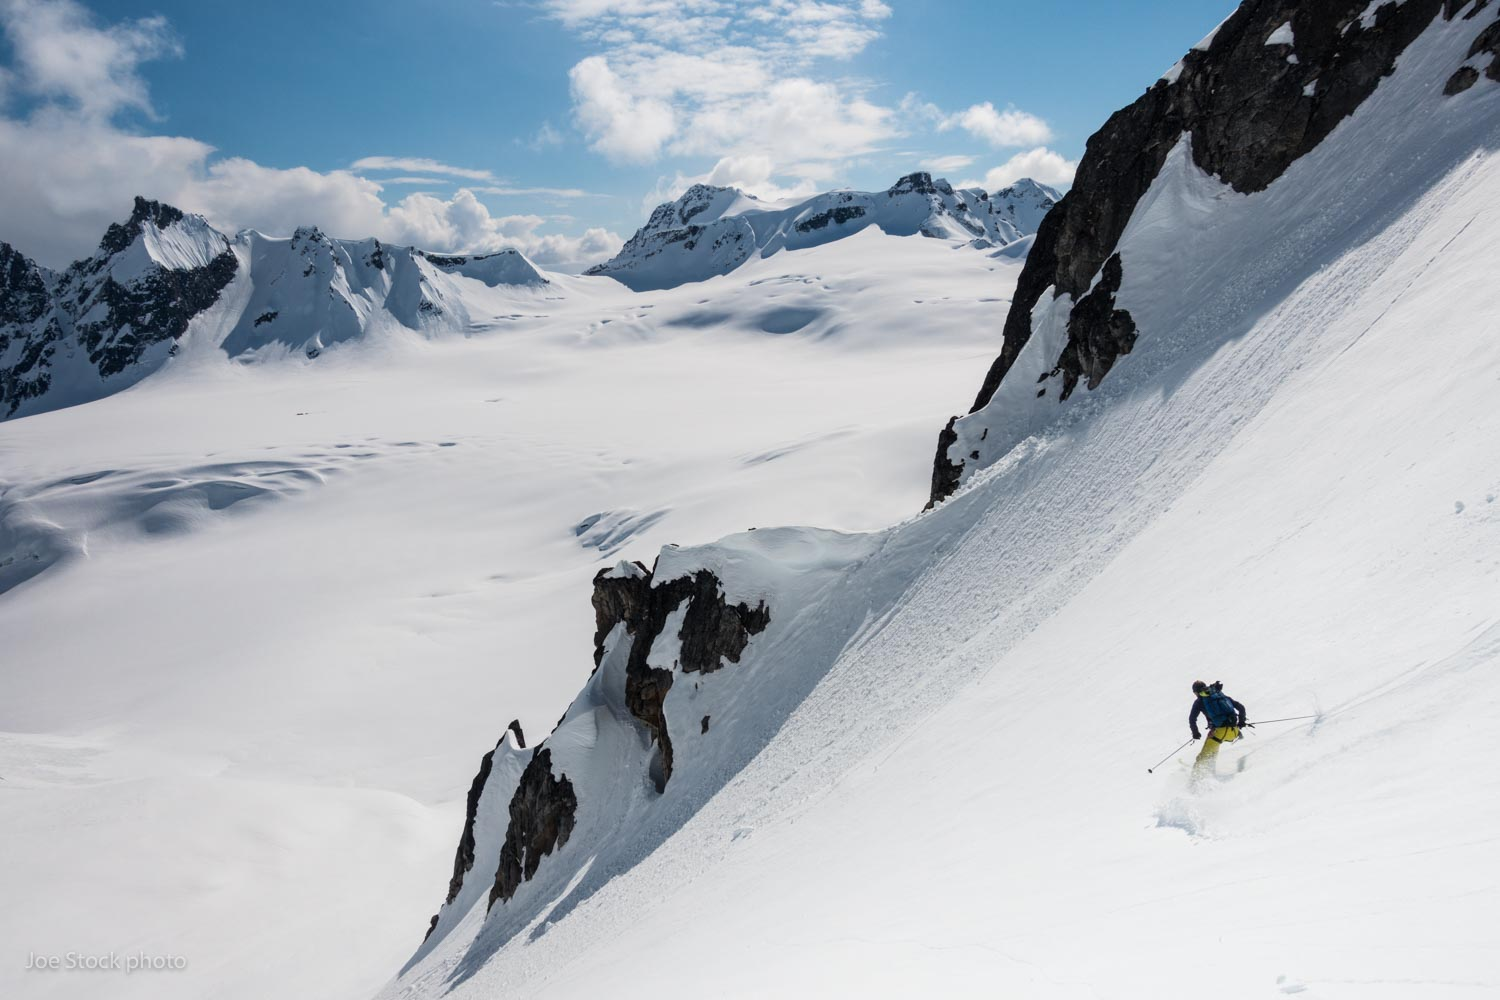 Jeff Colegrave in the Alaska Range.  Jeff and I skied together in 2015 . Jeff liked it so much that he brought his regular guide, Armin Fisher, and a crew to come back this year. We nailed it again.